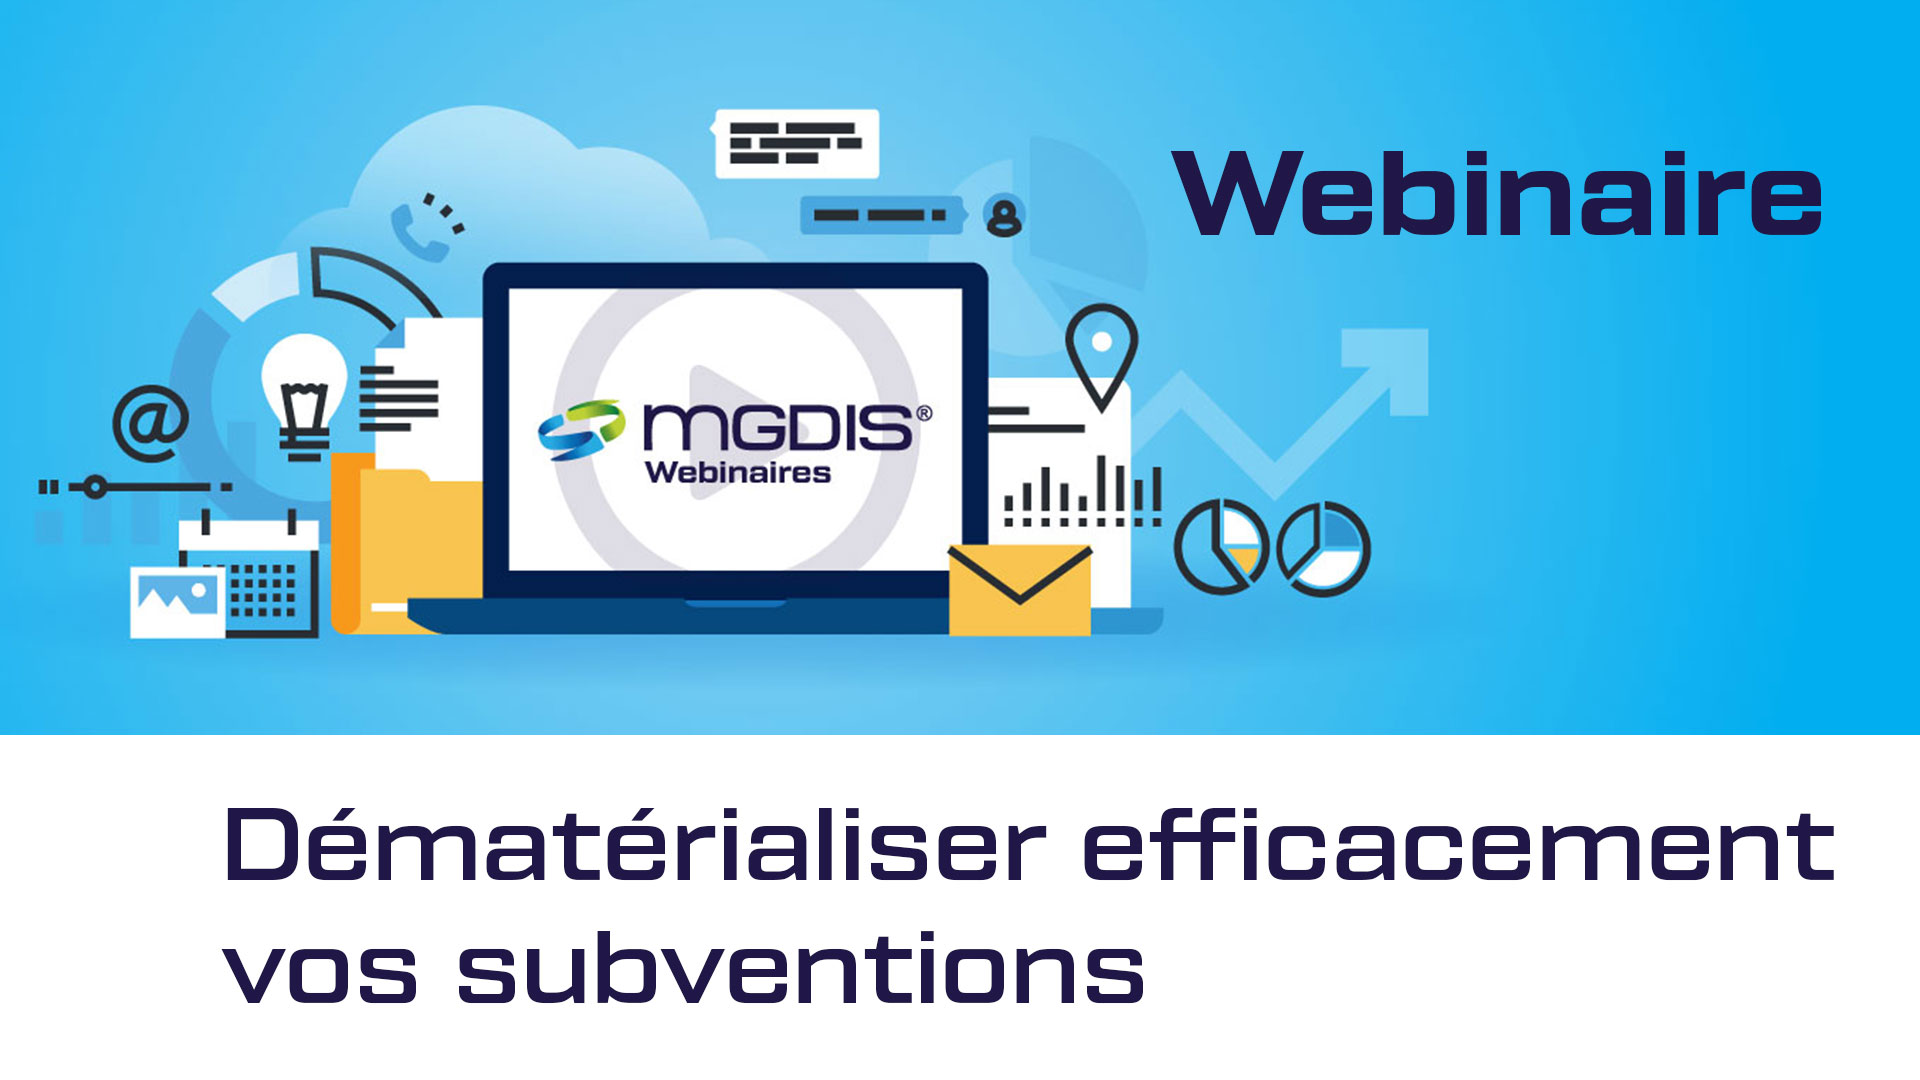 webinaire-MGDIS-dematerialiser-efficacement-subventions